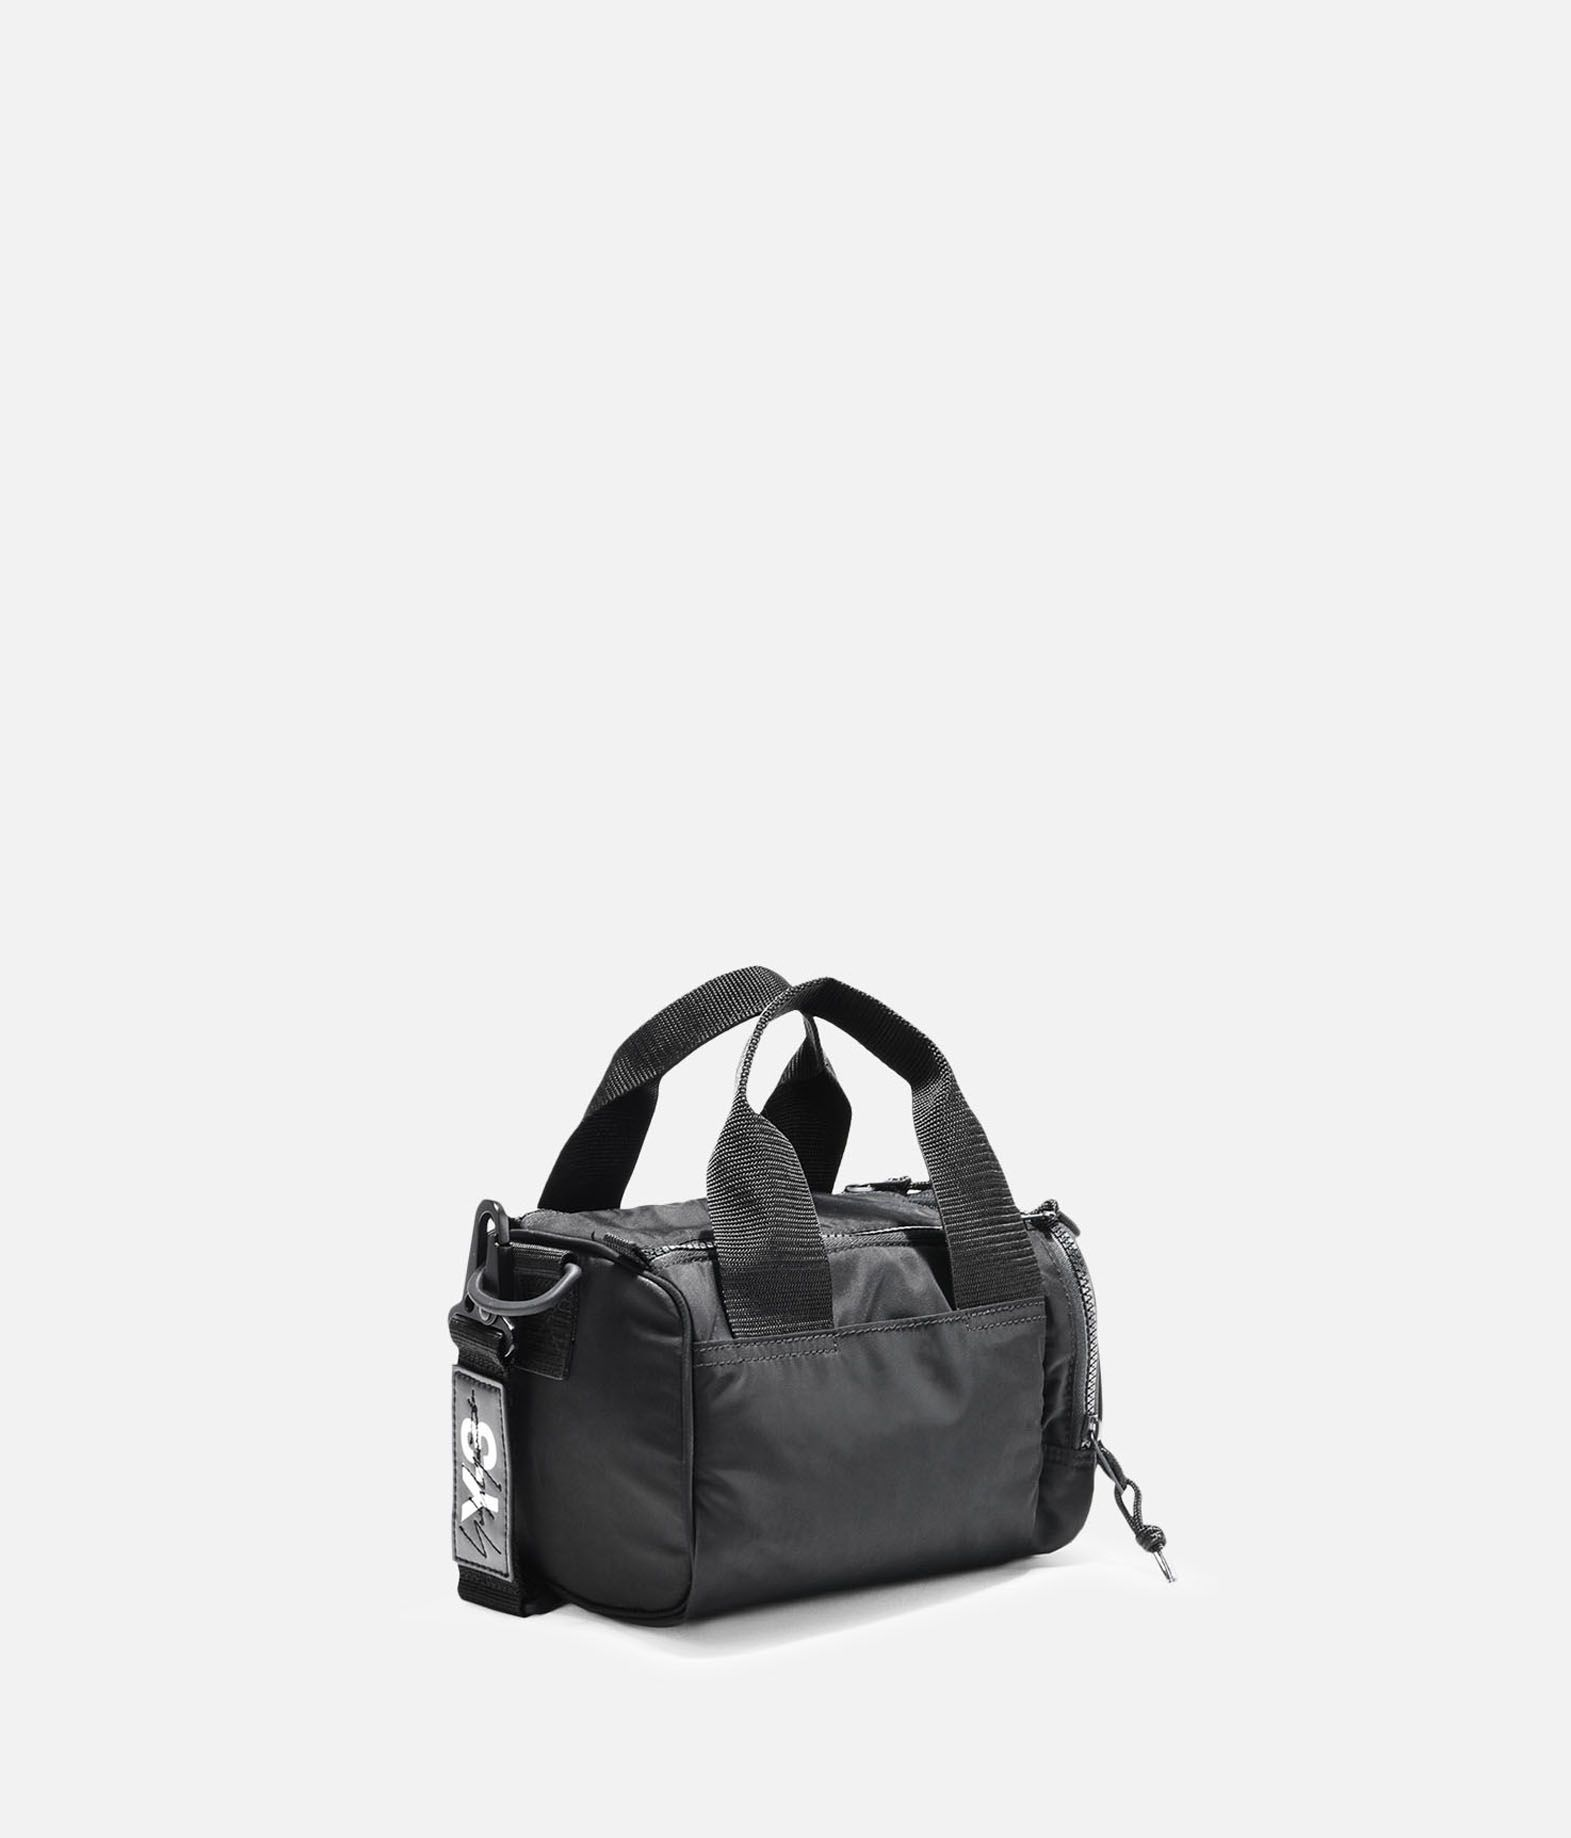 Y-3 Y-3 Mini Bag Small fabric bag E r